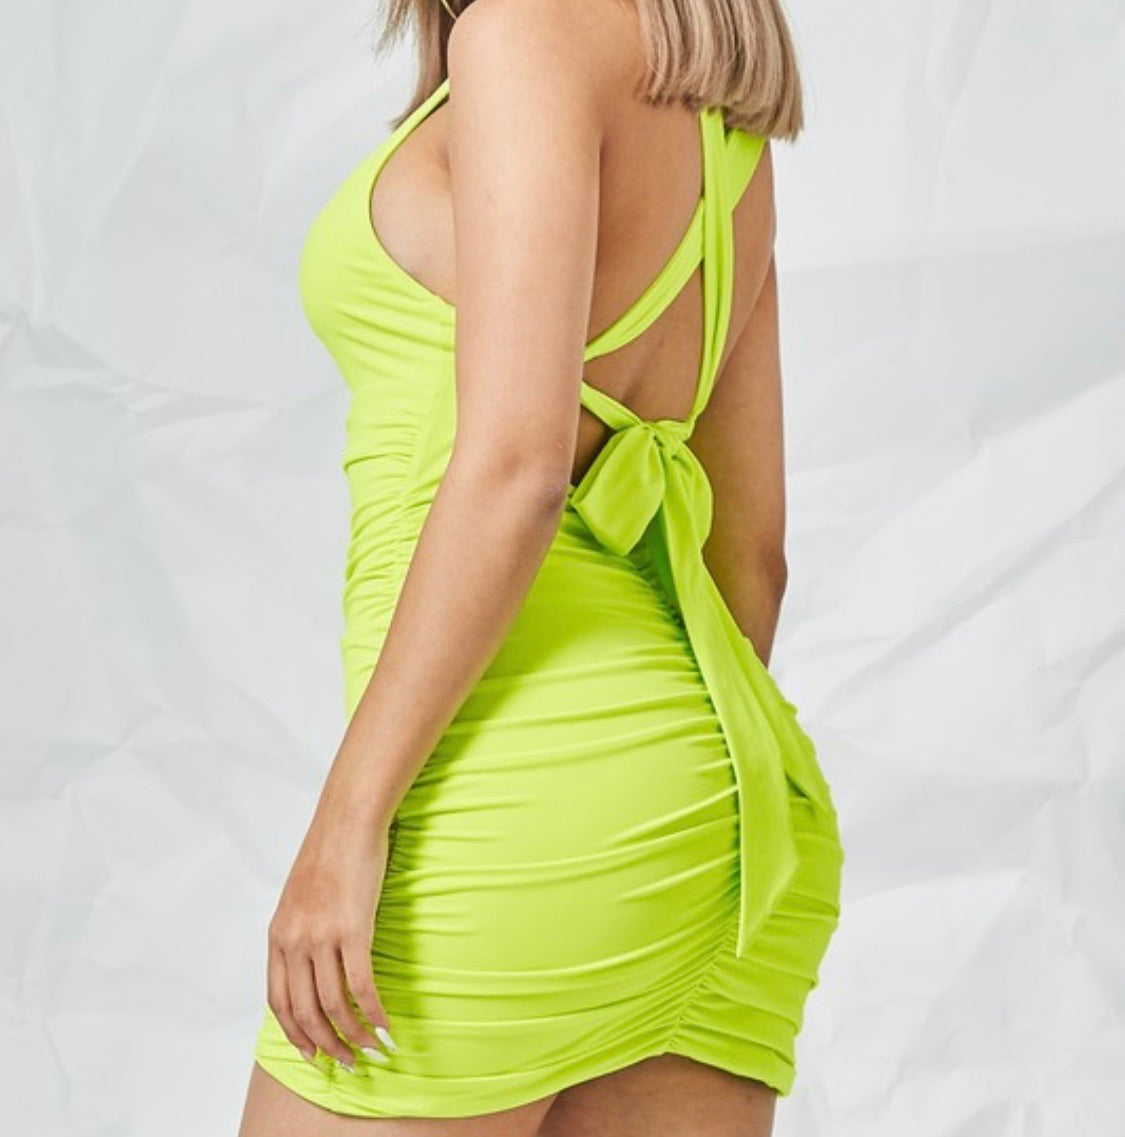 IN THIS IMAGE YOU CAN SEE A YOUNG WOMAN WEARING A  Front Cut-Out Mini Dress. THE BOTTOM SKIRT AREA IS RUCHED. THE DRESS HAS A BACK TIE CLOSURE.  IT IS MADE UP OF 90% polyester AND 10% Spandex.